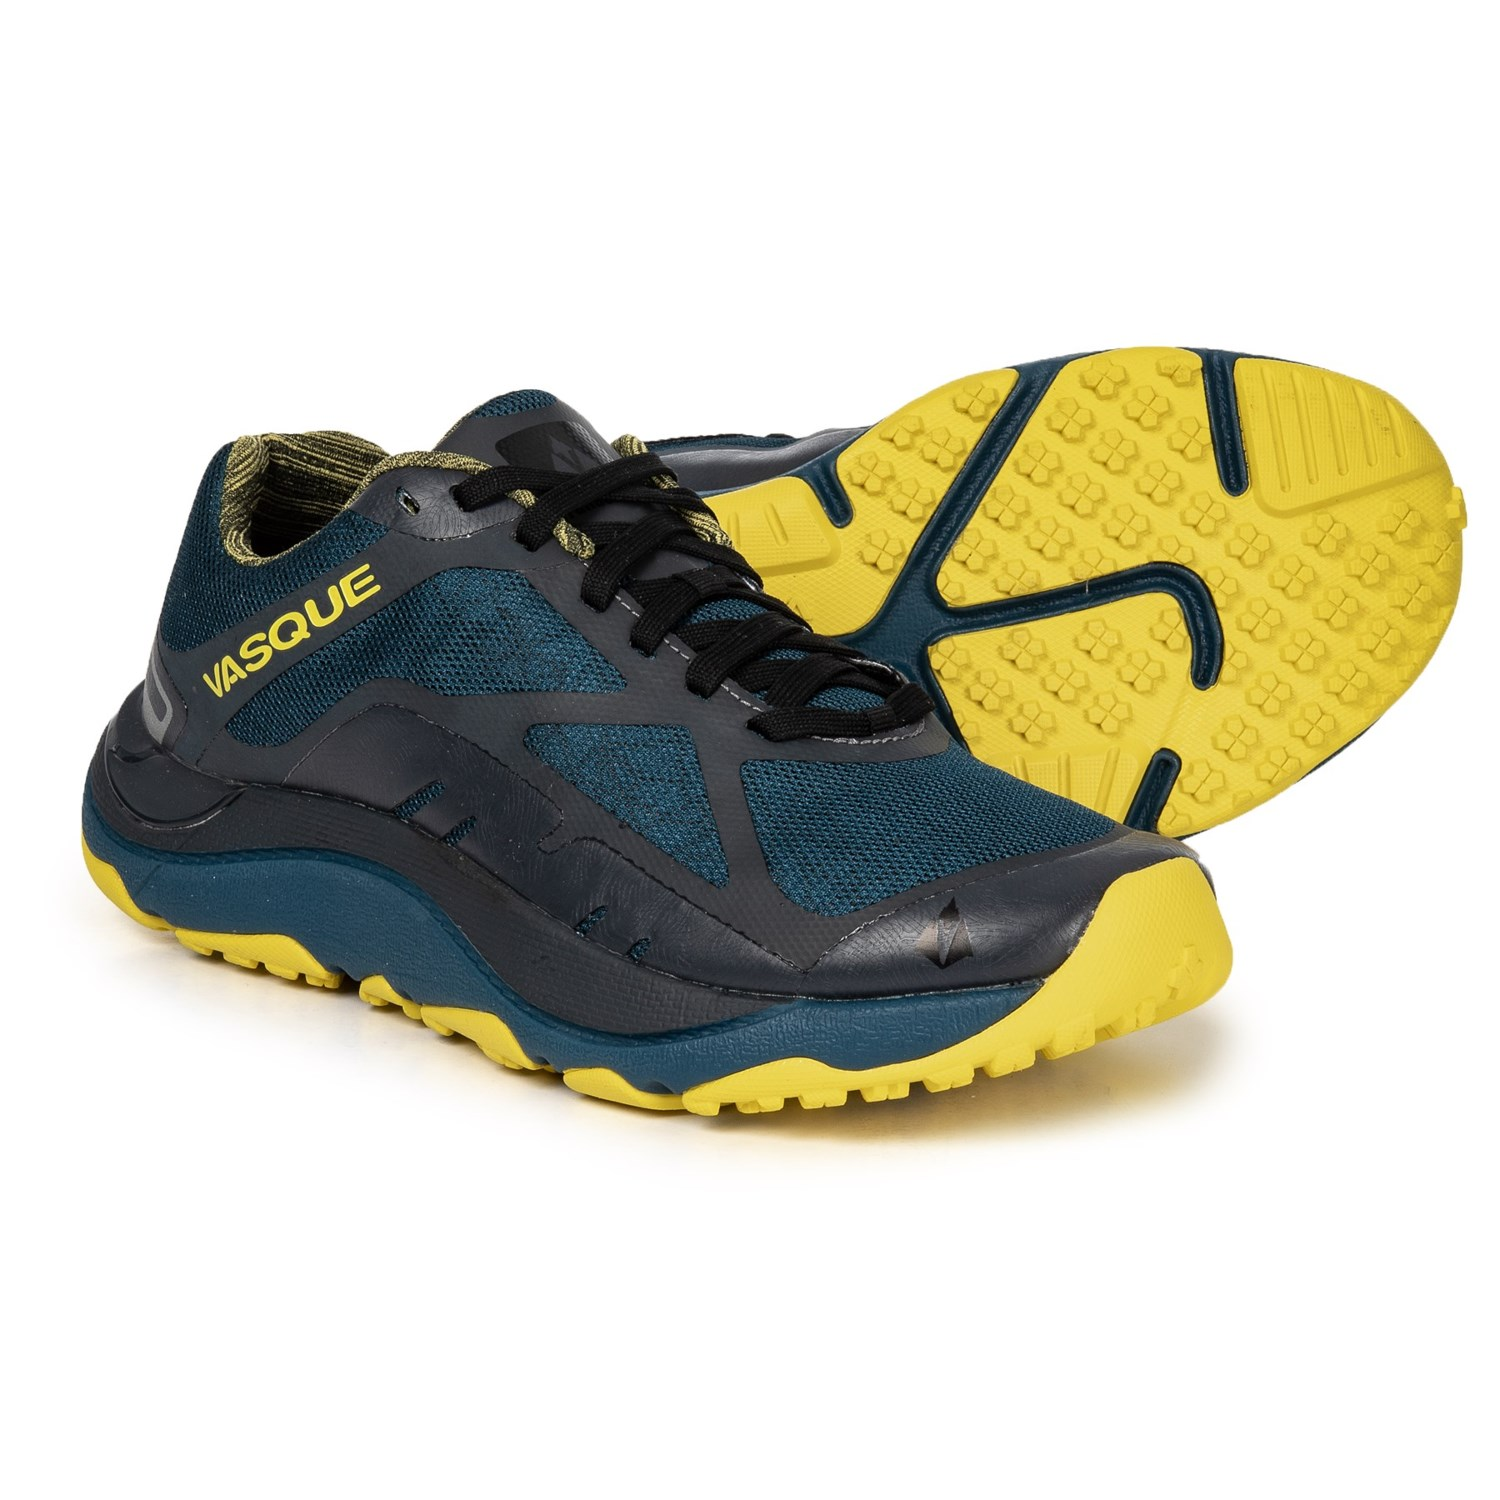 7366ccc7ebc94 Vasque Trailbender II Trail Running Shoes (For Men) in Shaded Spruce Green  Sheen